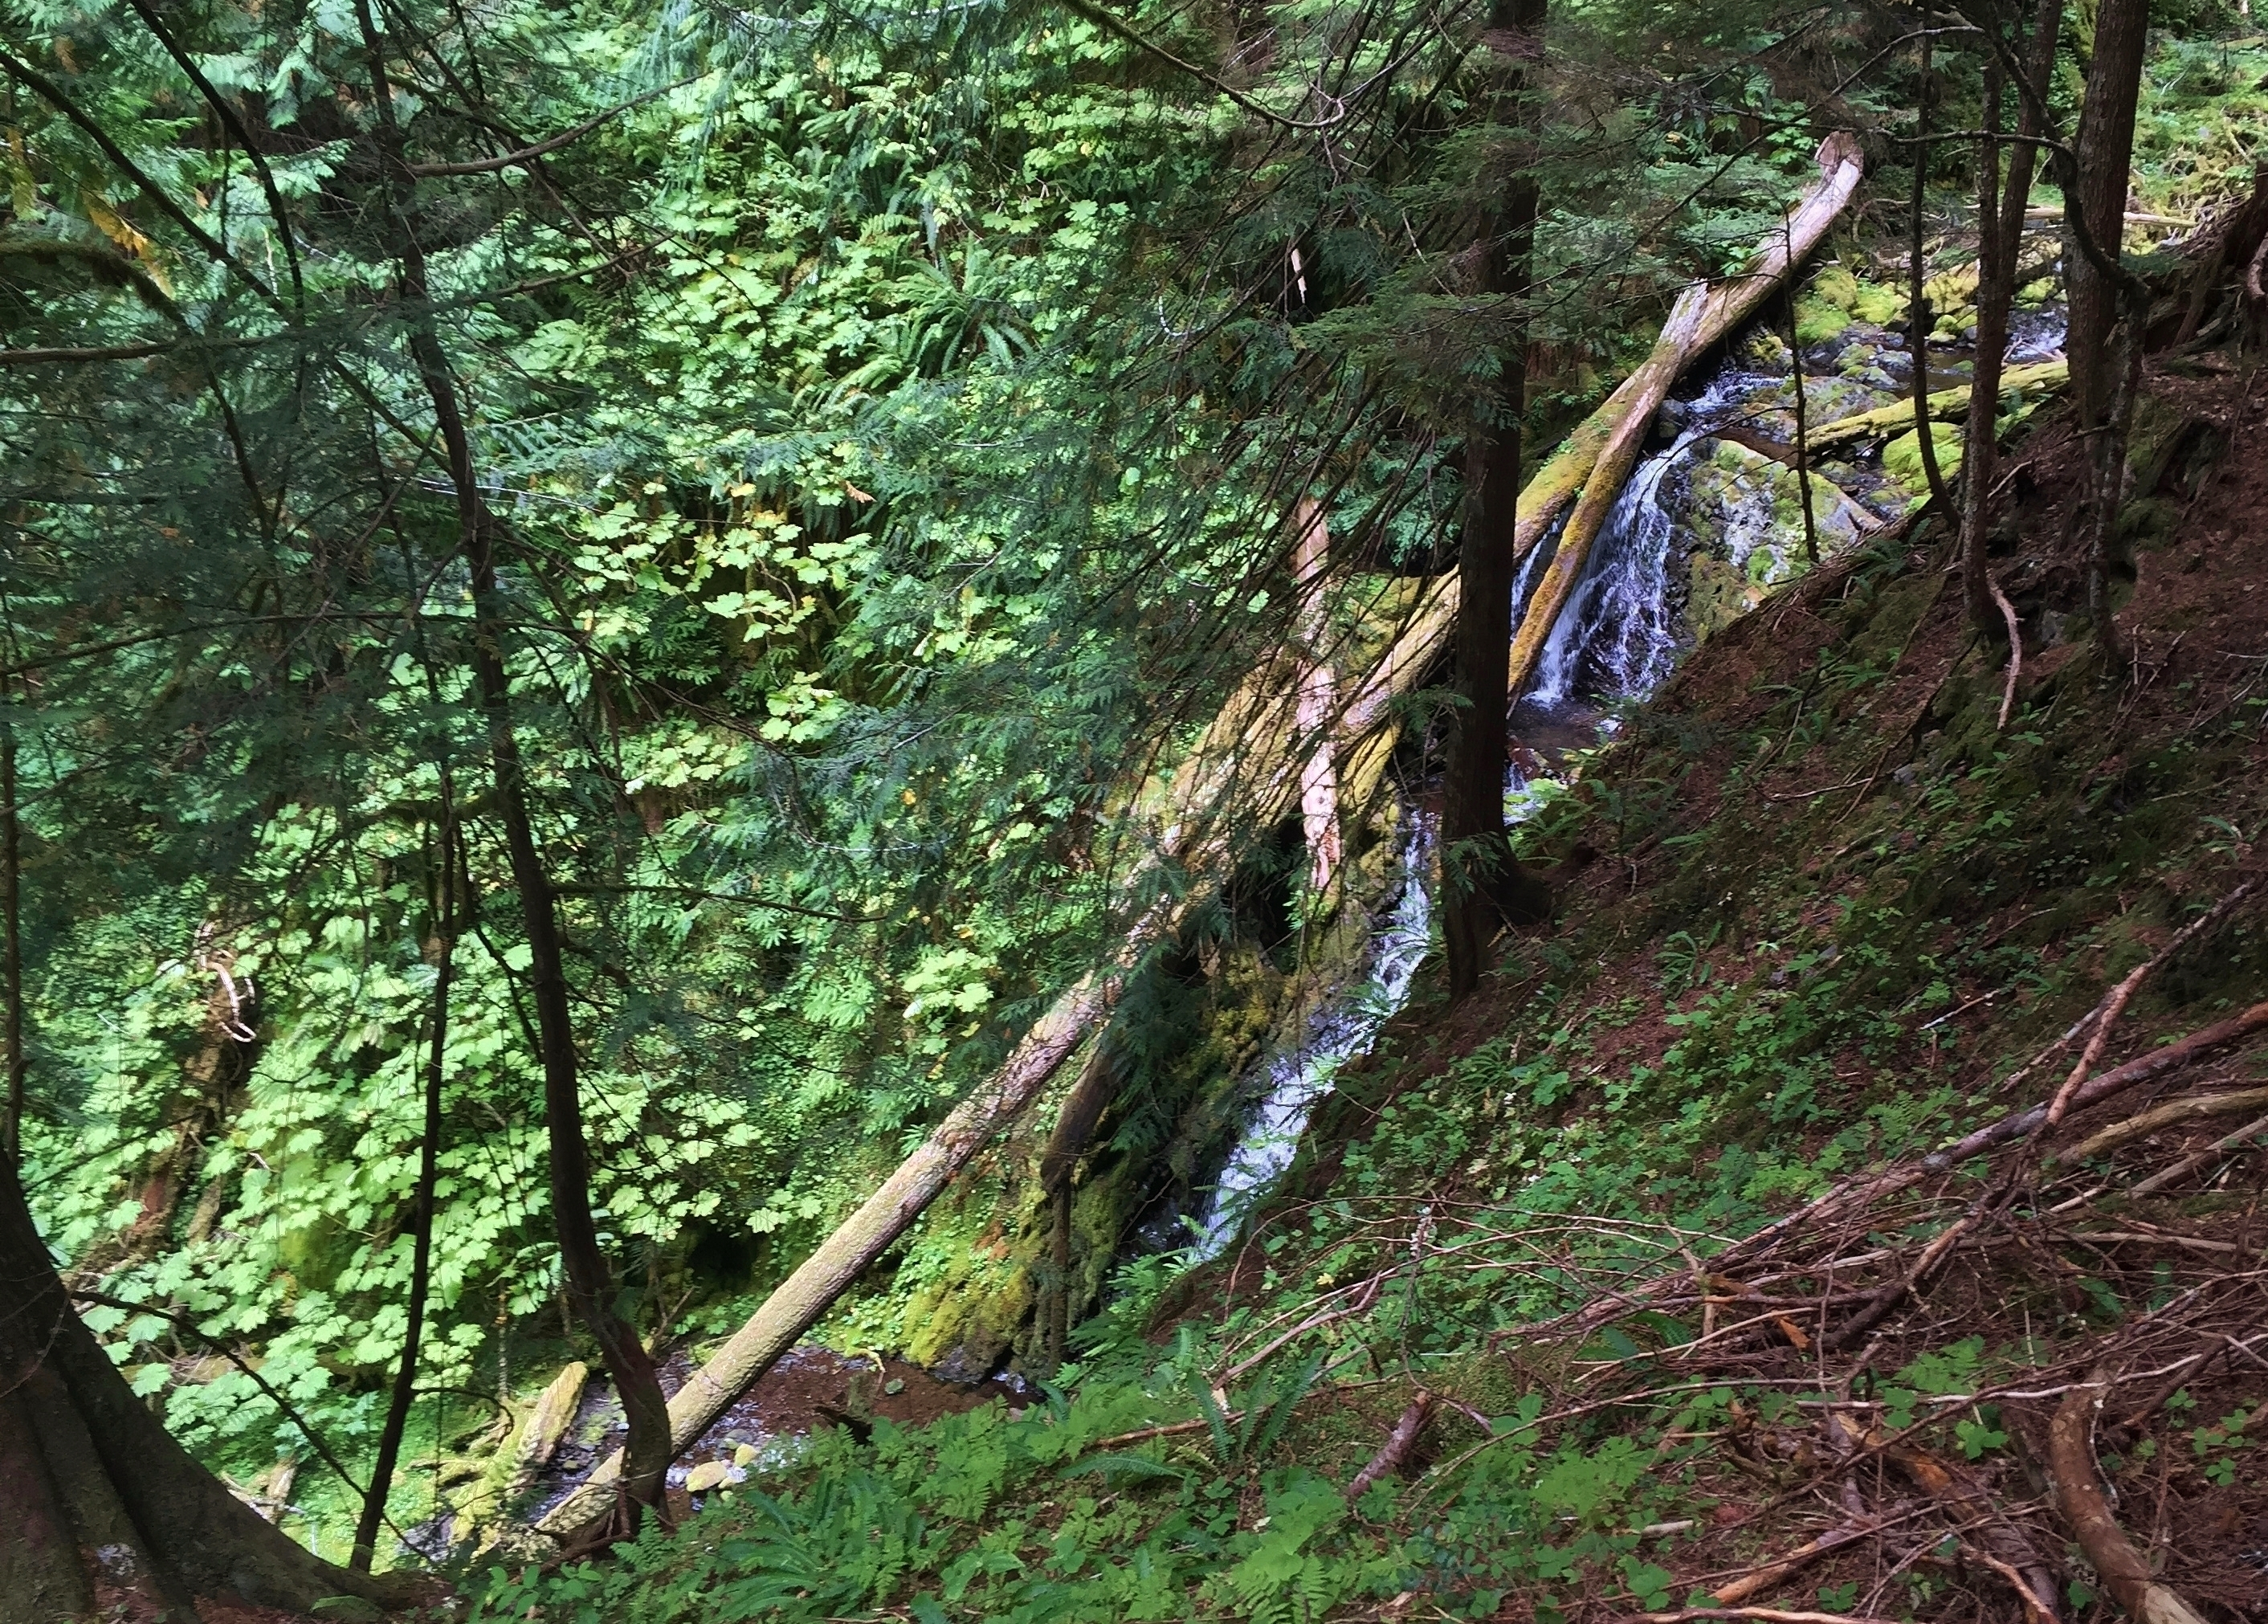 The Aurora Divide Trail climbs steeply at first along an unnamed brook, before flattening in a series of long switchbacks up Happy Lake Ridge. Aurora Divide Trail, September 14, 2015.